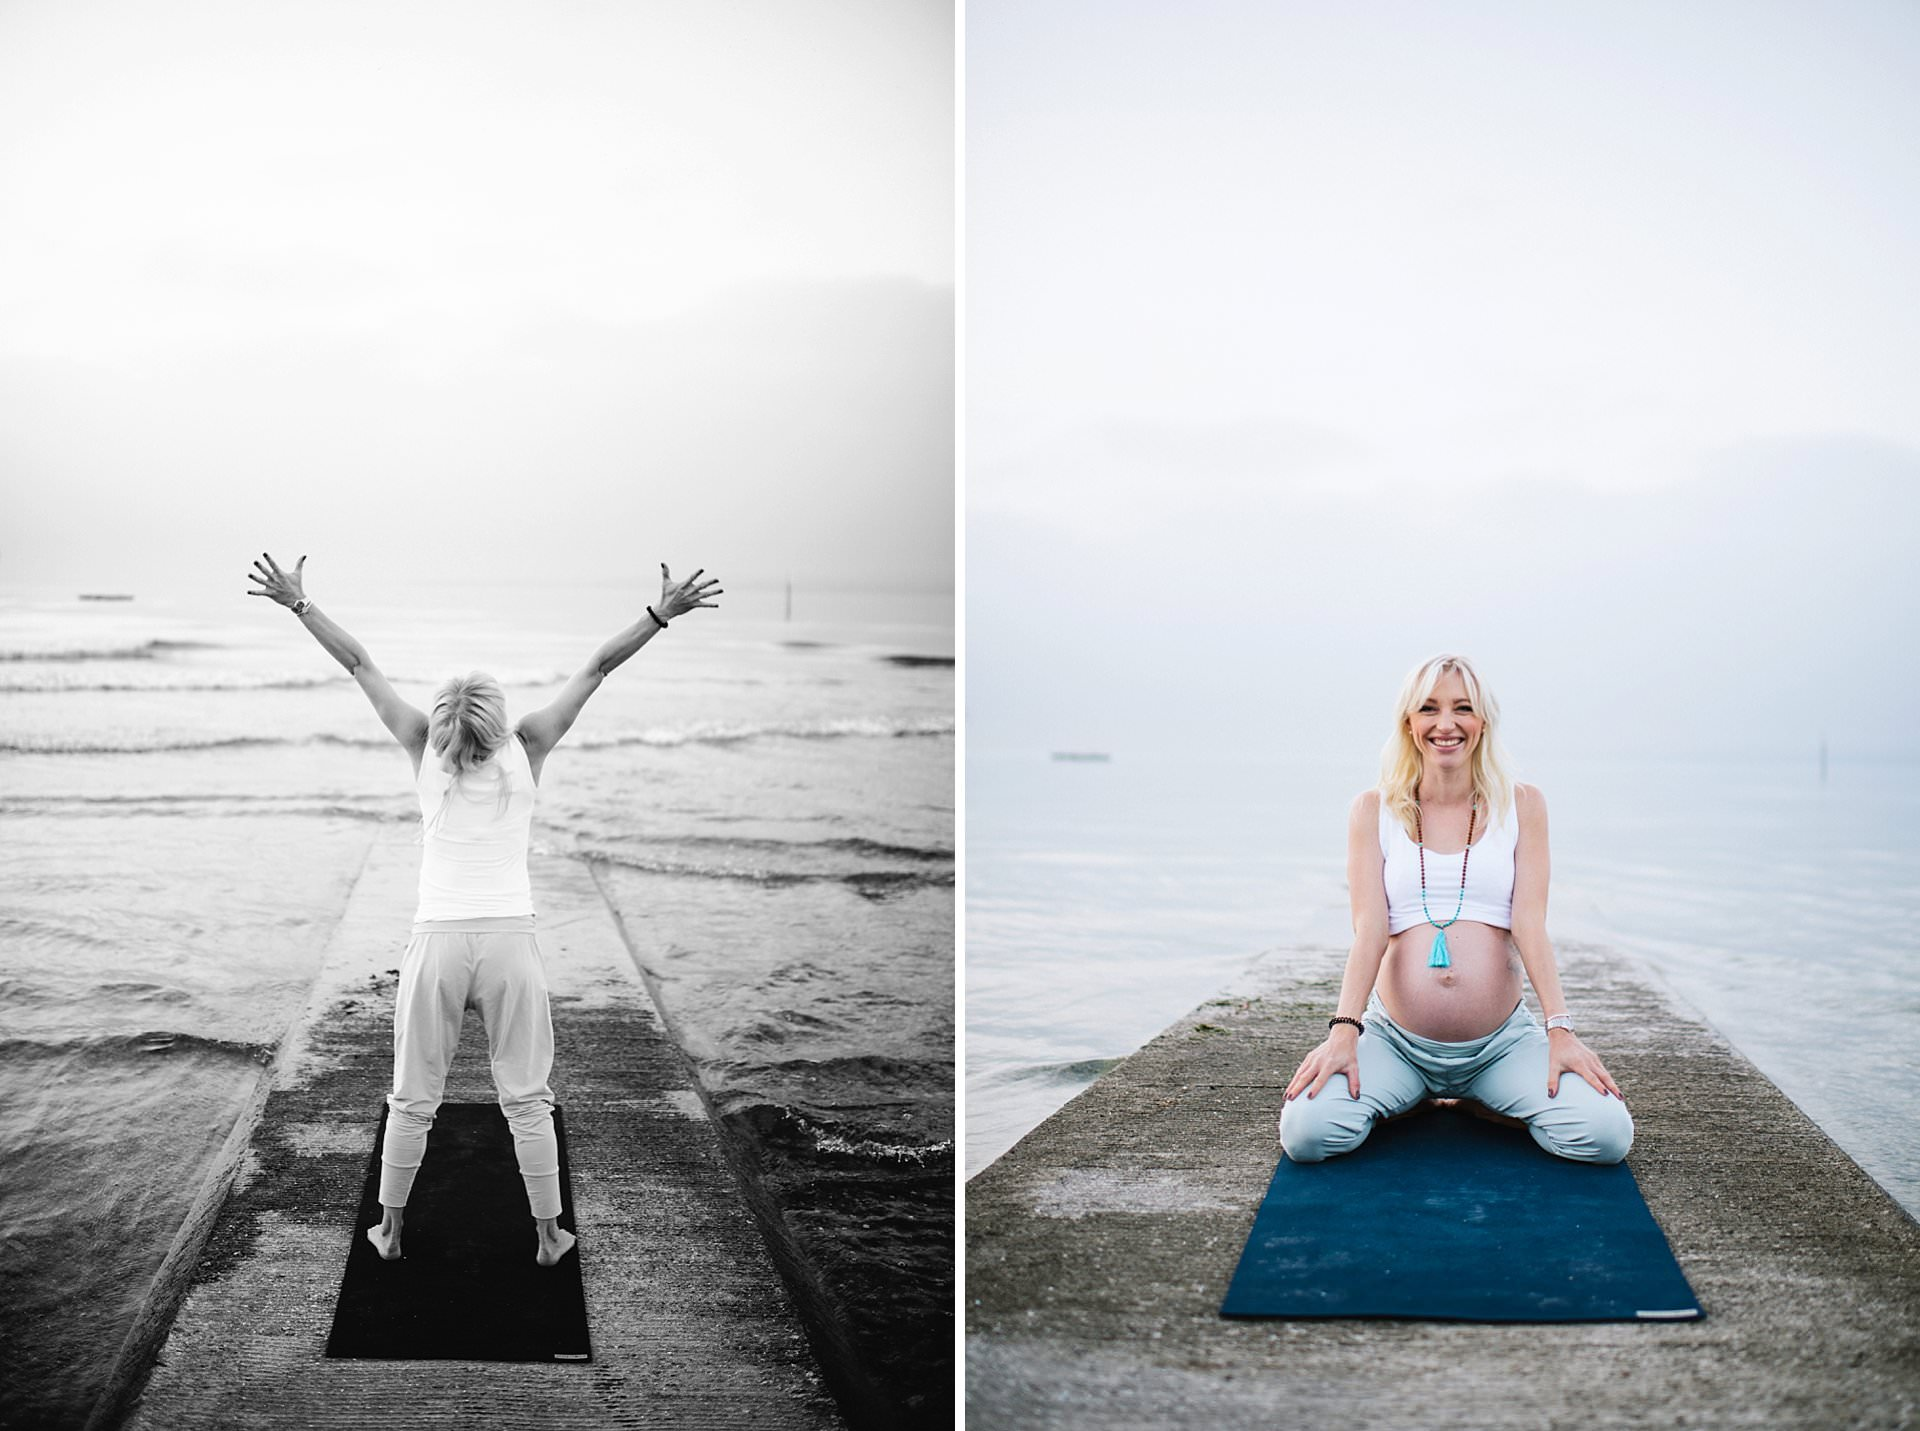 Fotograf Konstanz - Fotograf Portrait Babybauch Yoga Shooting Konstanz Zürich 18 - Yoga Shooting at Lake Constance beach with sunrise  - 30 -